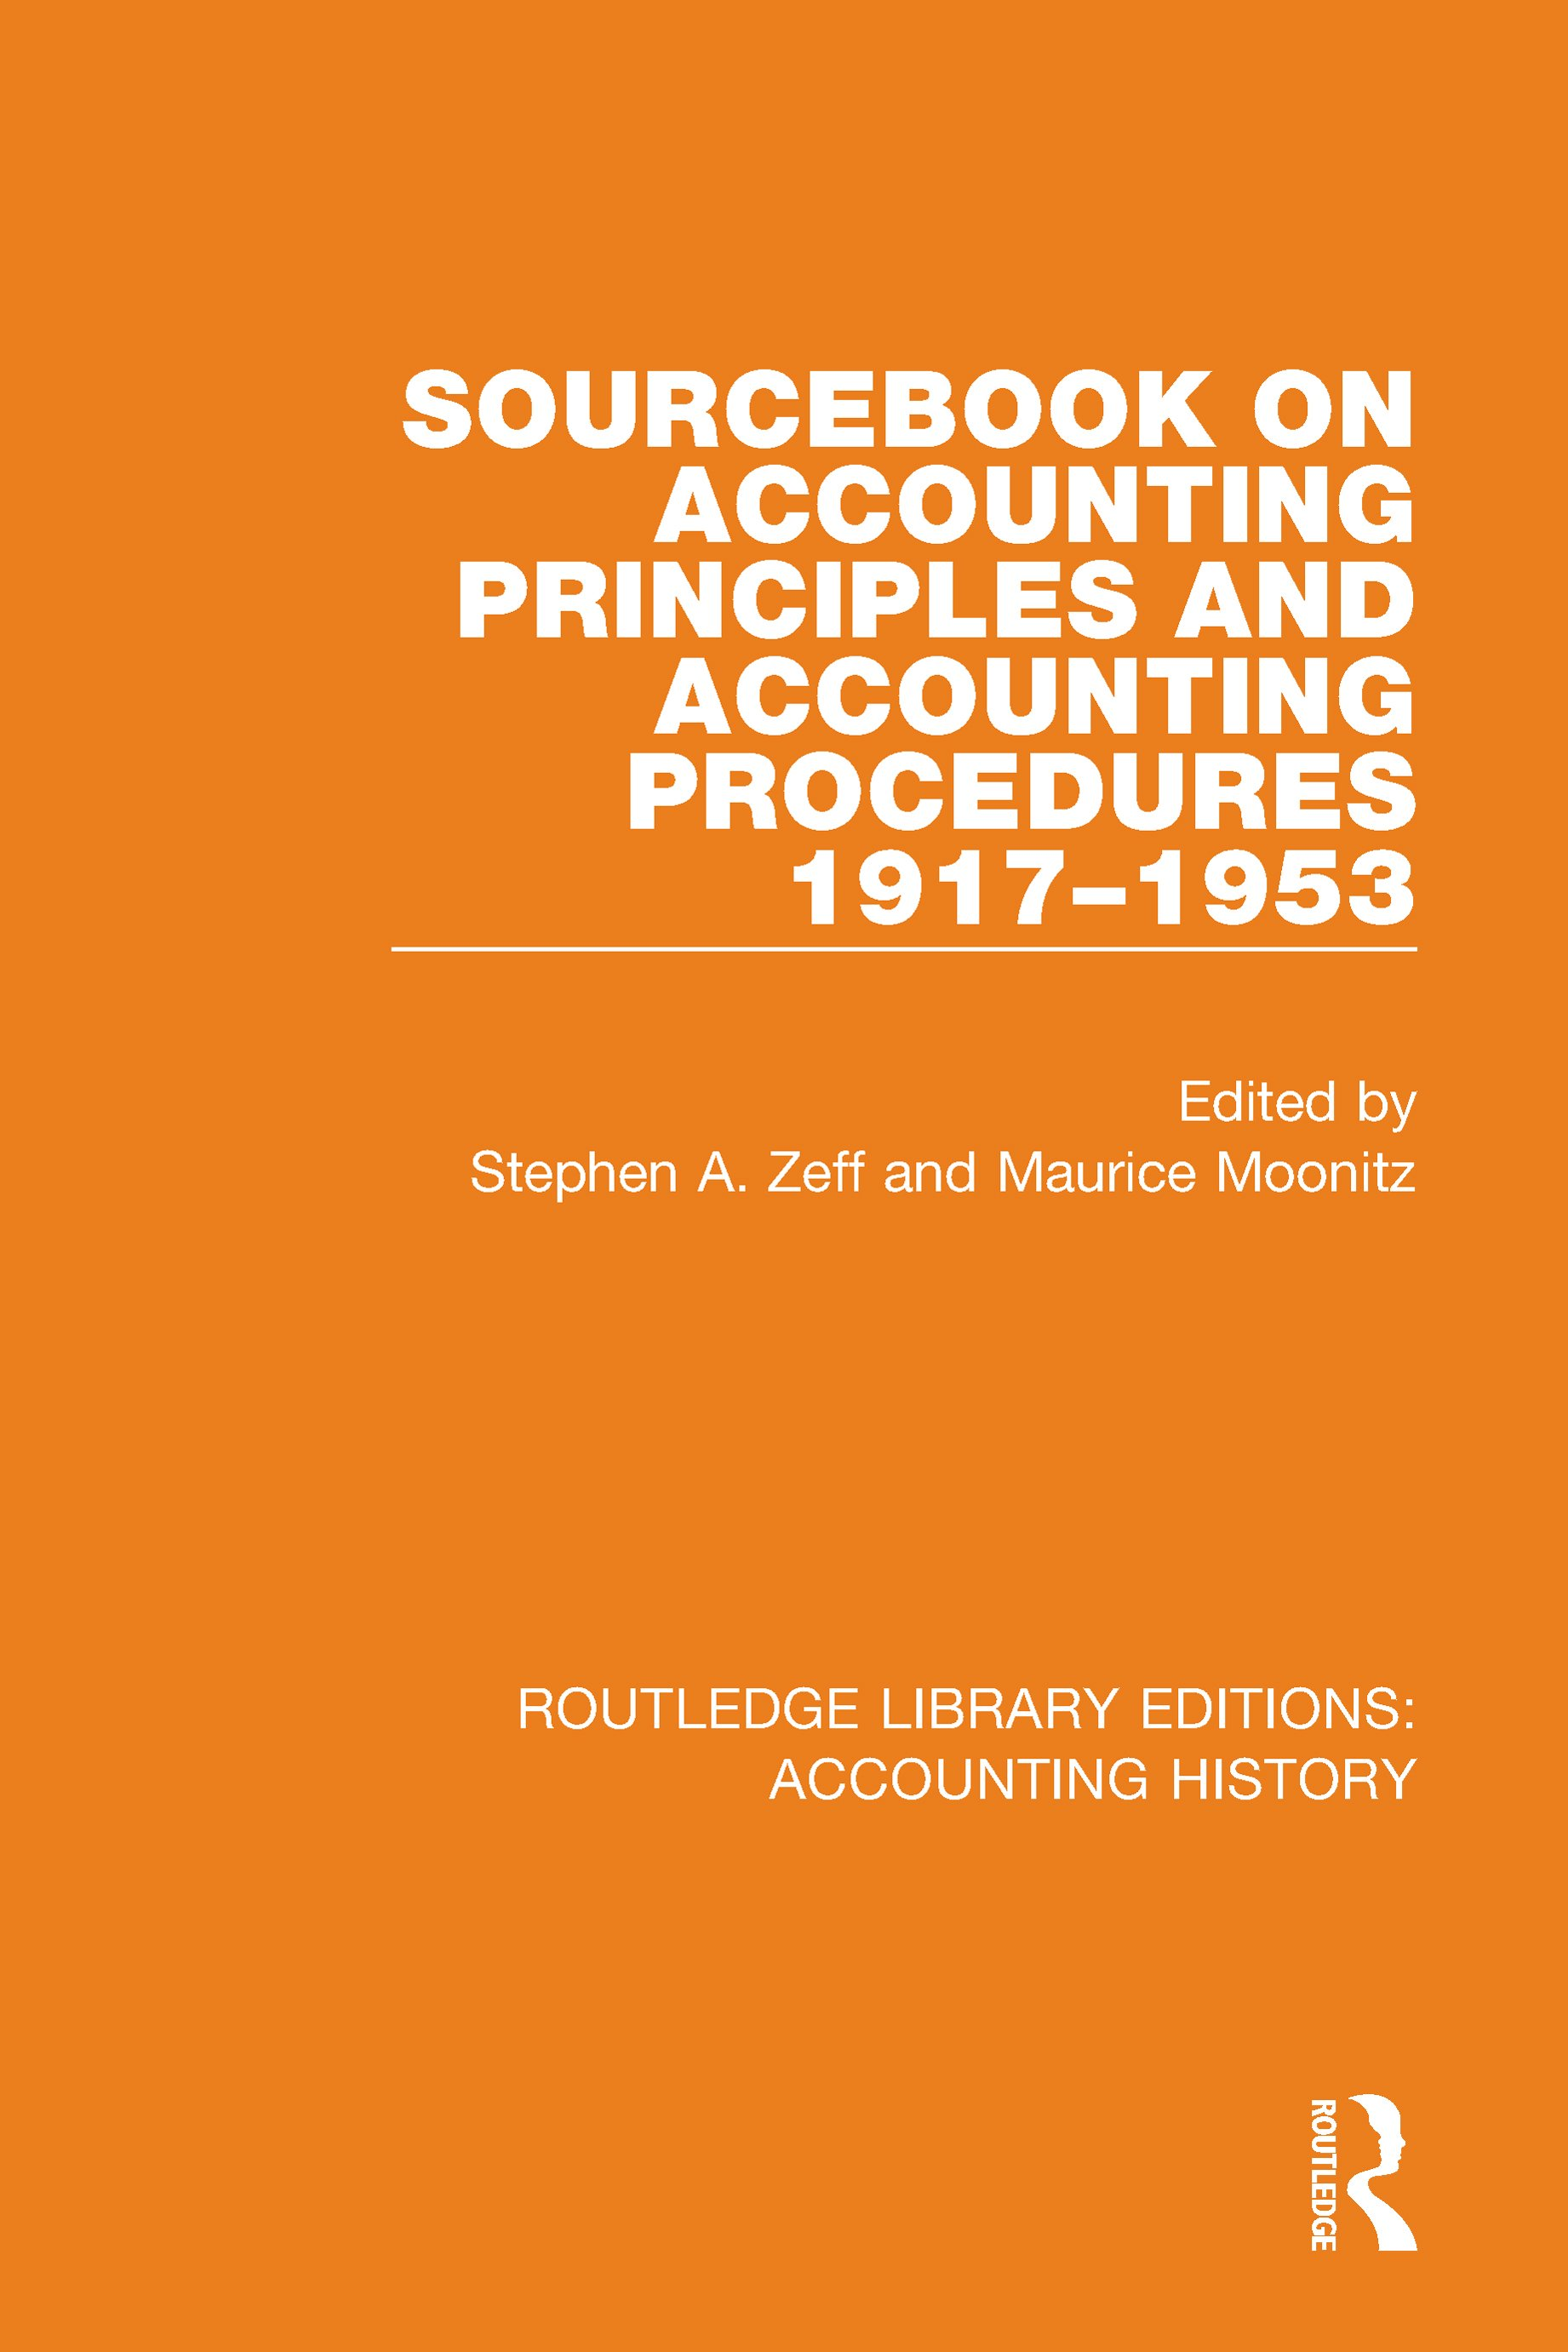 Sourcebook on Accounting Principles and Procedures, 1917-1953